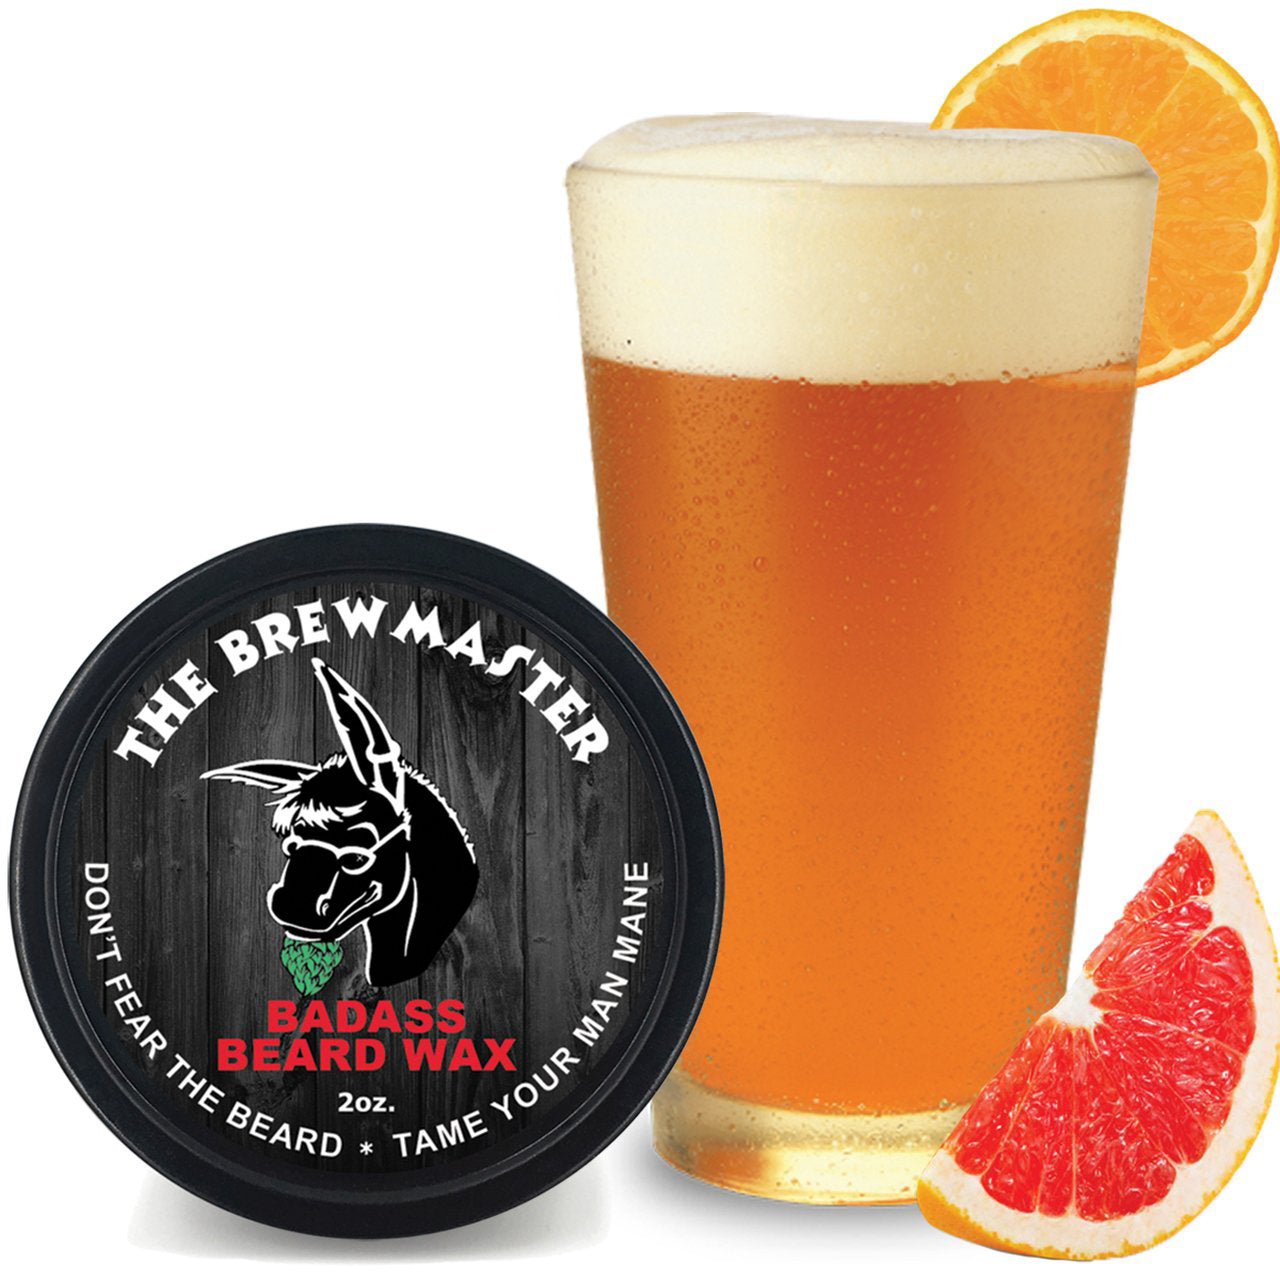 Badass Beard Wax - The Brewmaster